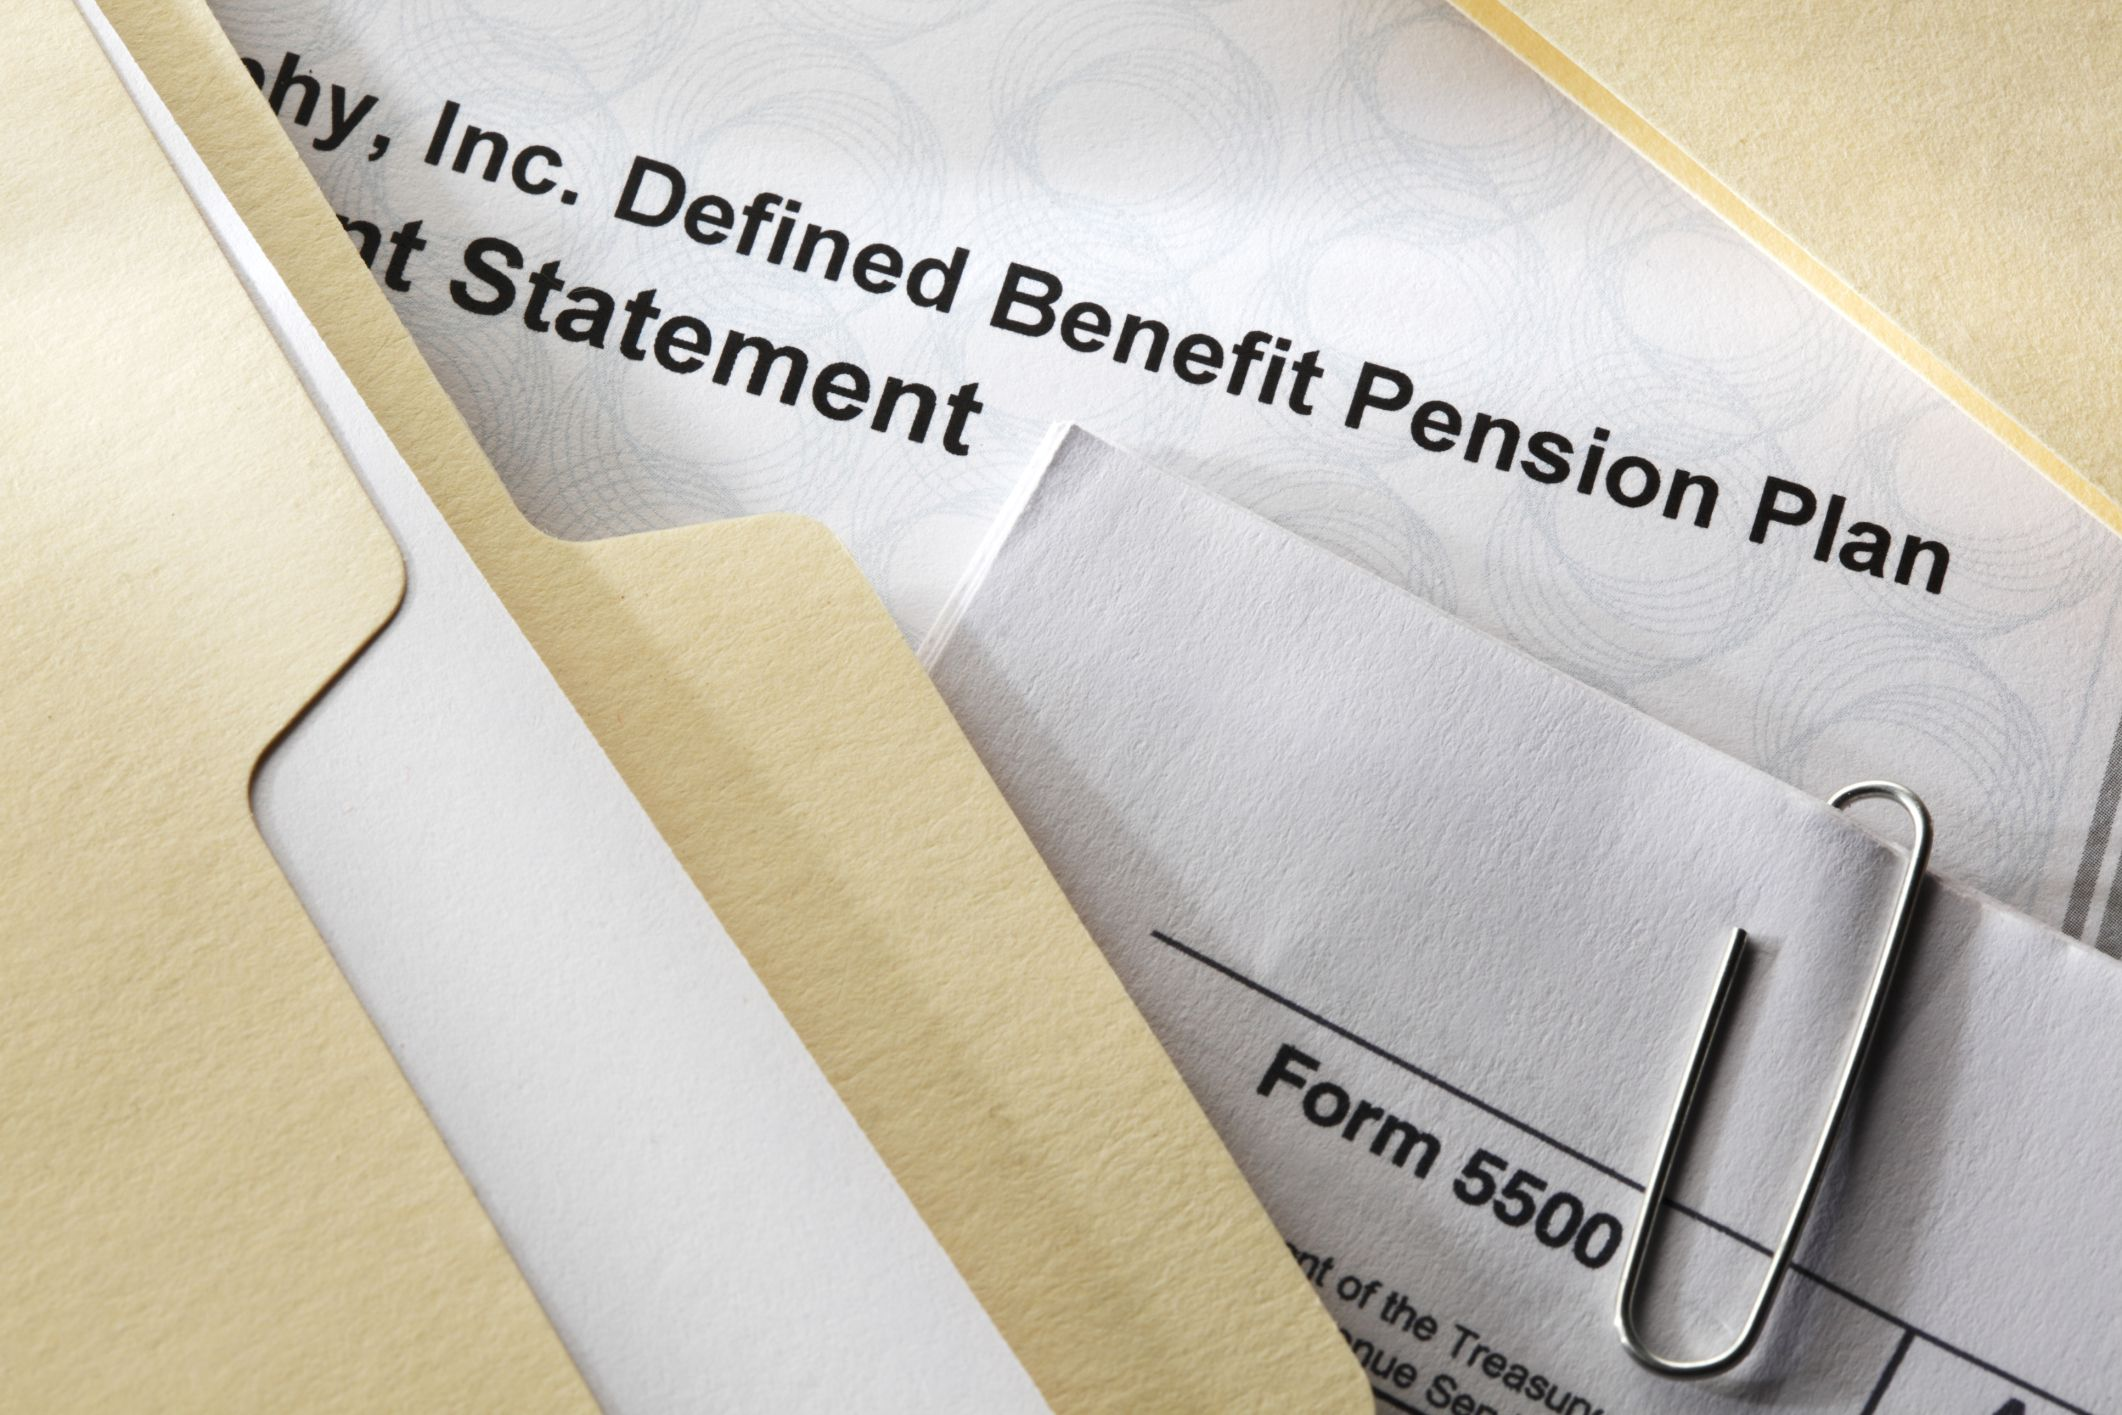 An Overview of the Pension Benefit Guaranty Corporation (PBGC)